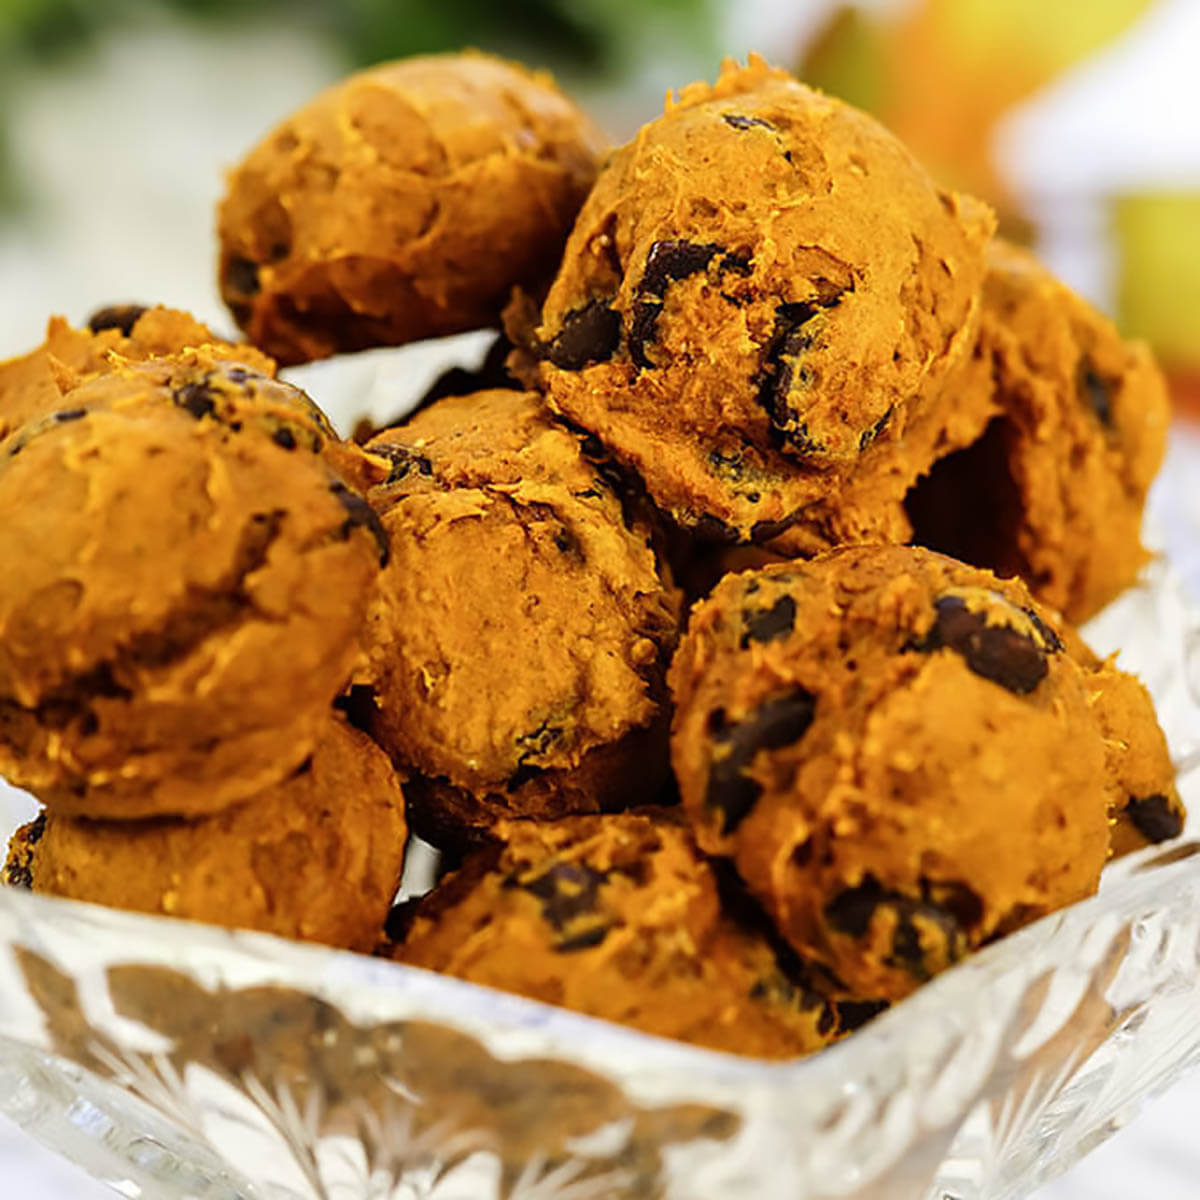 A big pile of pumpkin chocolate chip cookies on glass plate.